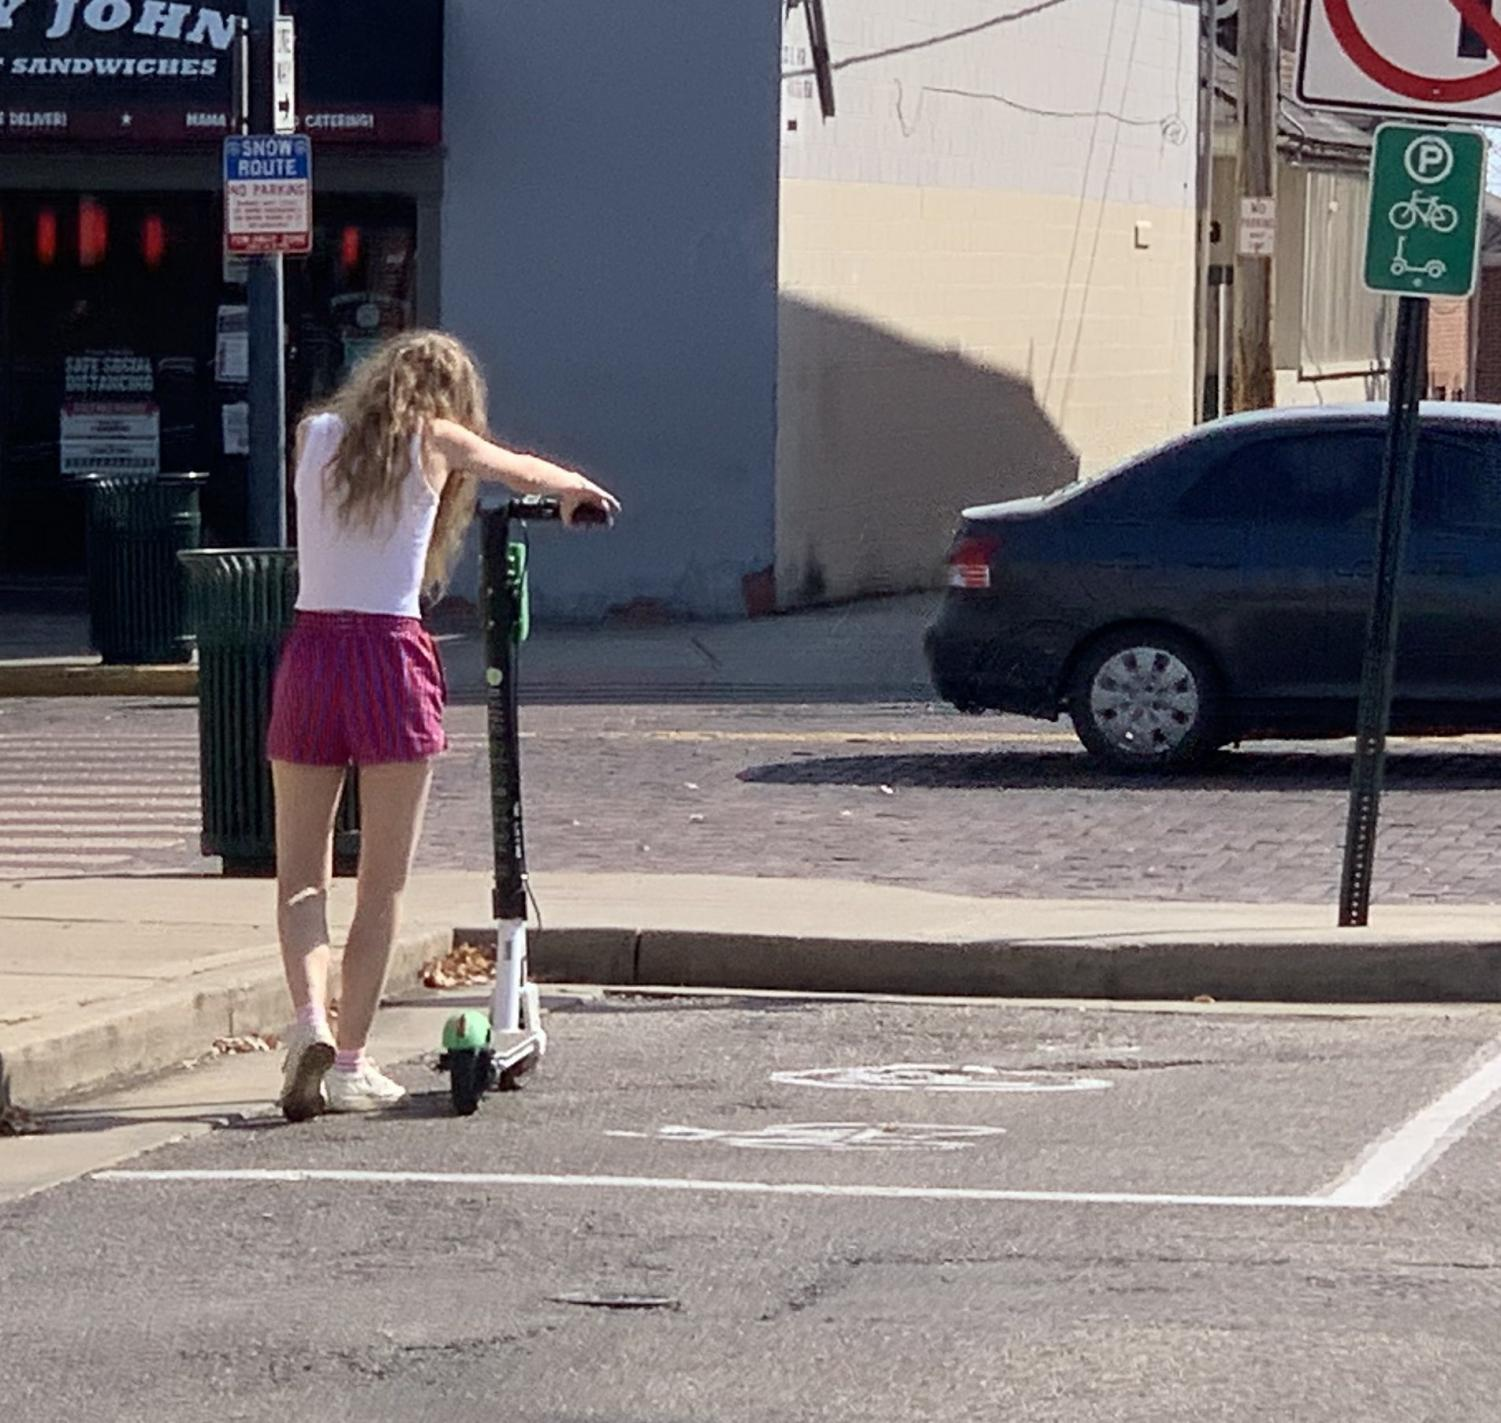 Students rent scooters from designated parking areas